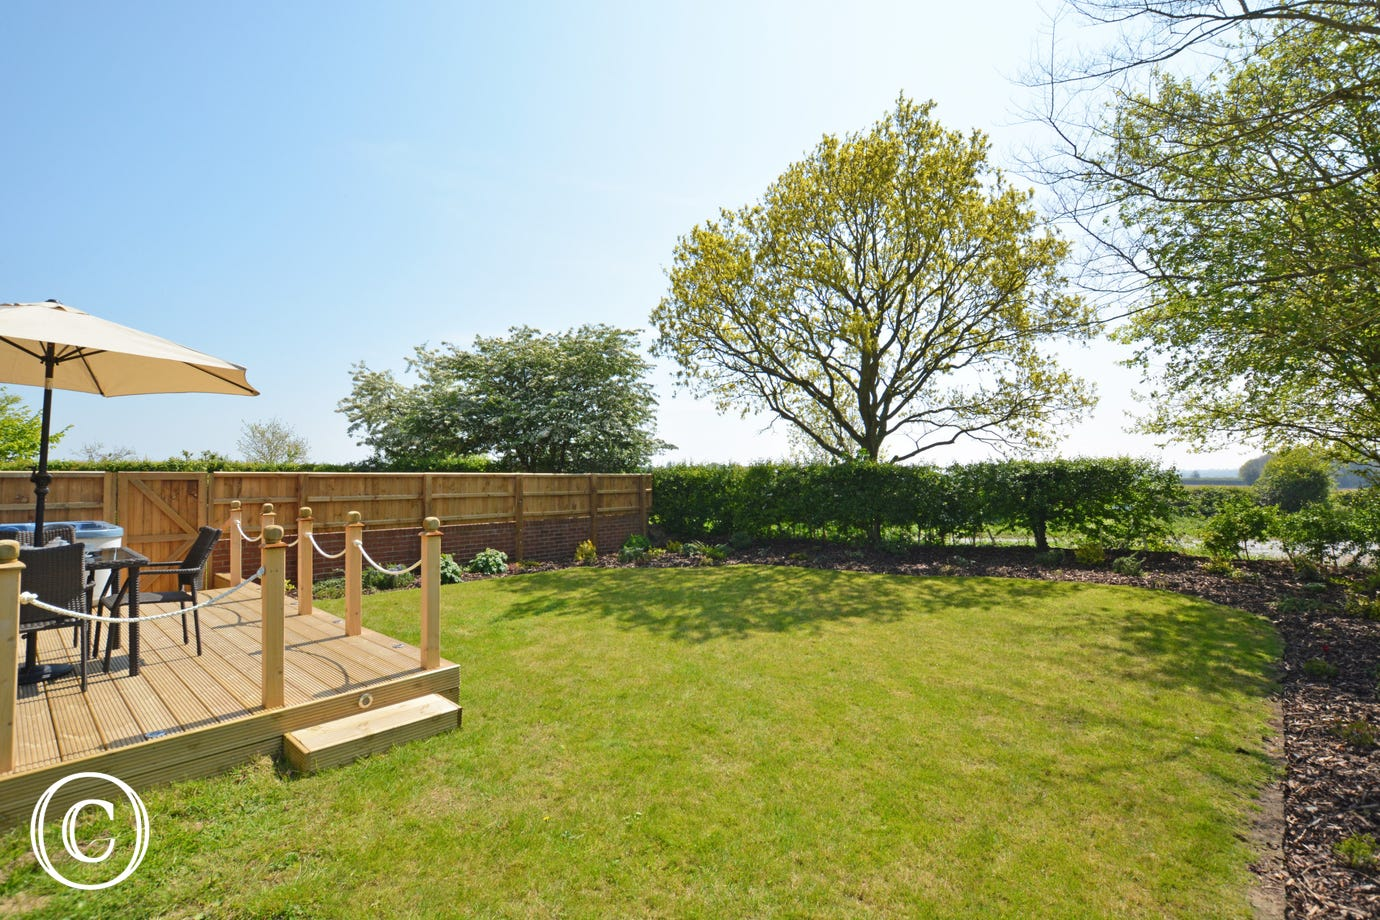 Enclosed lawn garden perfect for children to let of steam!